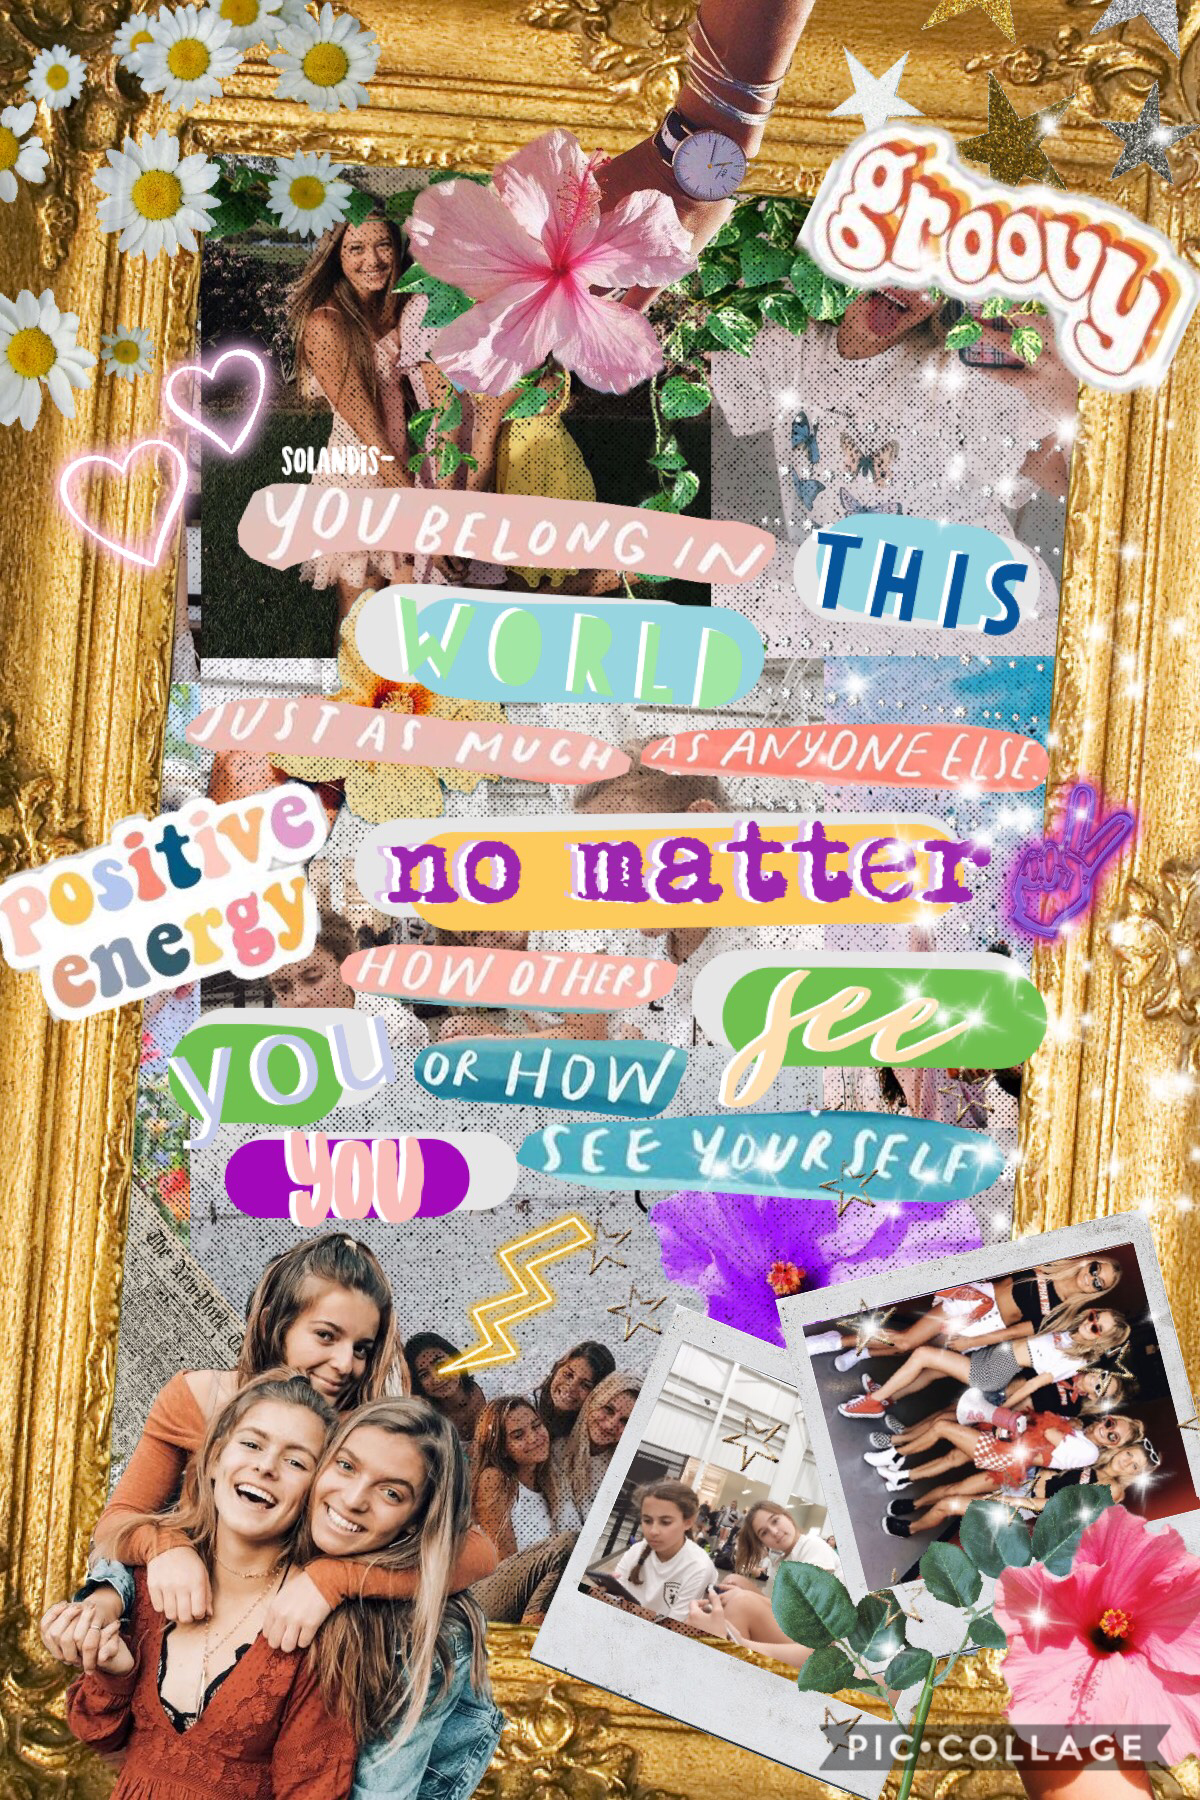 🌸✨Tappy✨🌸 4.9.19.  Hola ✨ Happy Tuesday 🌸 It's Lenten cheat day for me, so might as well use it 💕 A little rusty on making collages, but I hope you like ♥️ Again thx for 1000 followers ☀️ Easter is soon! QOTD: pastel or neon AOTD: pastel